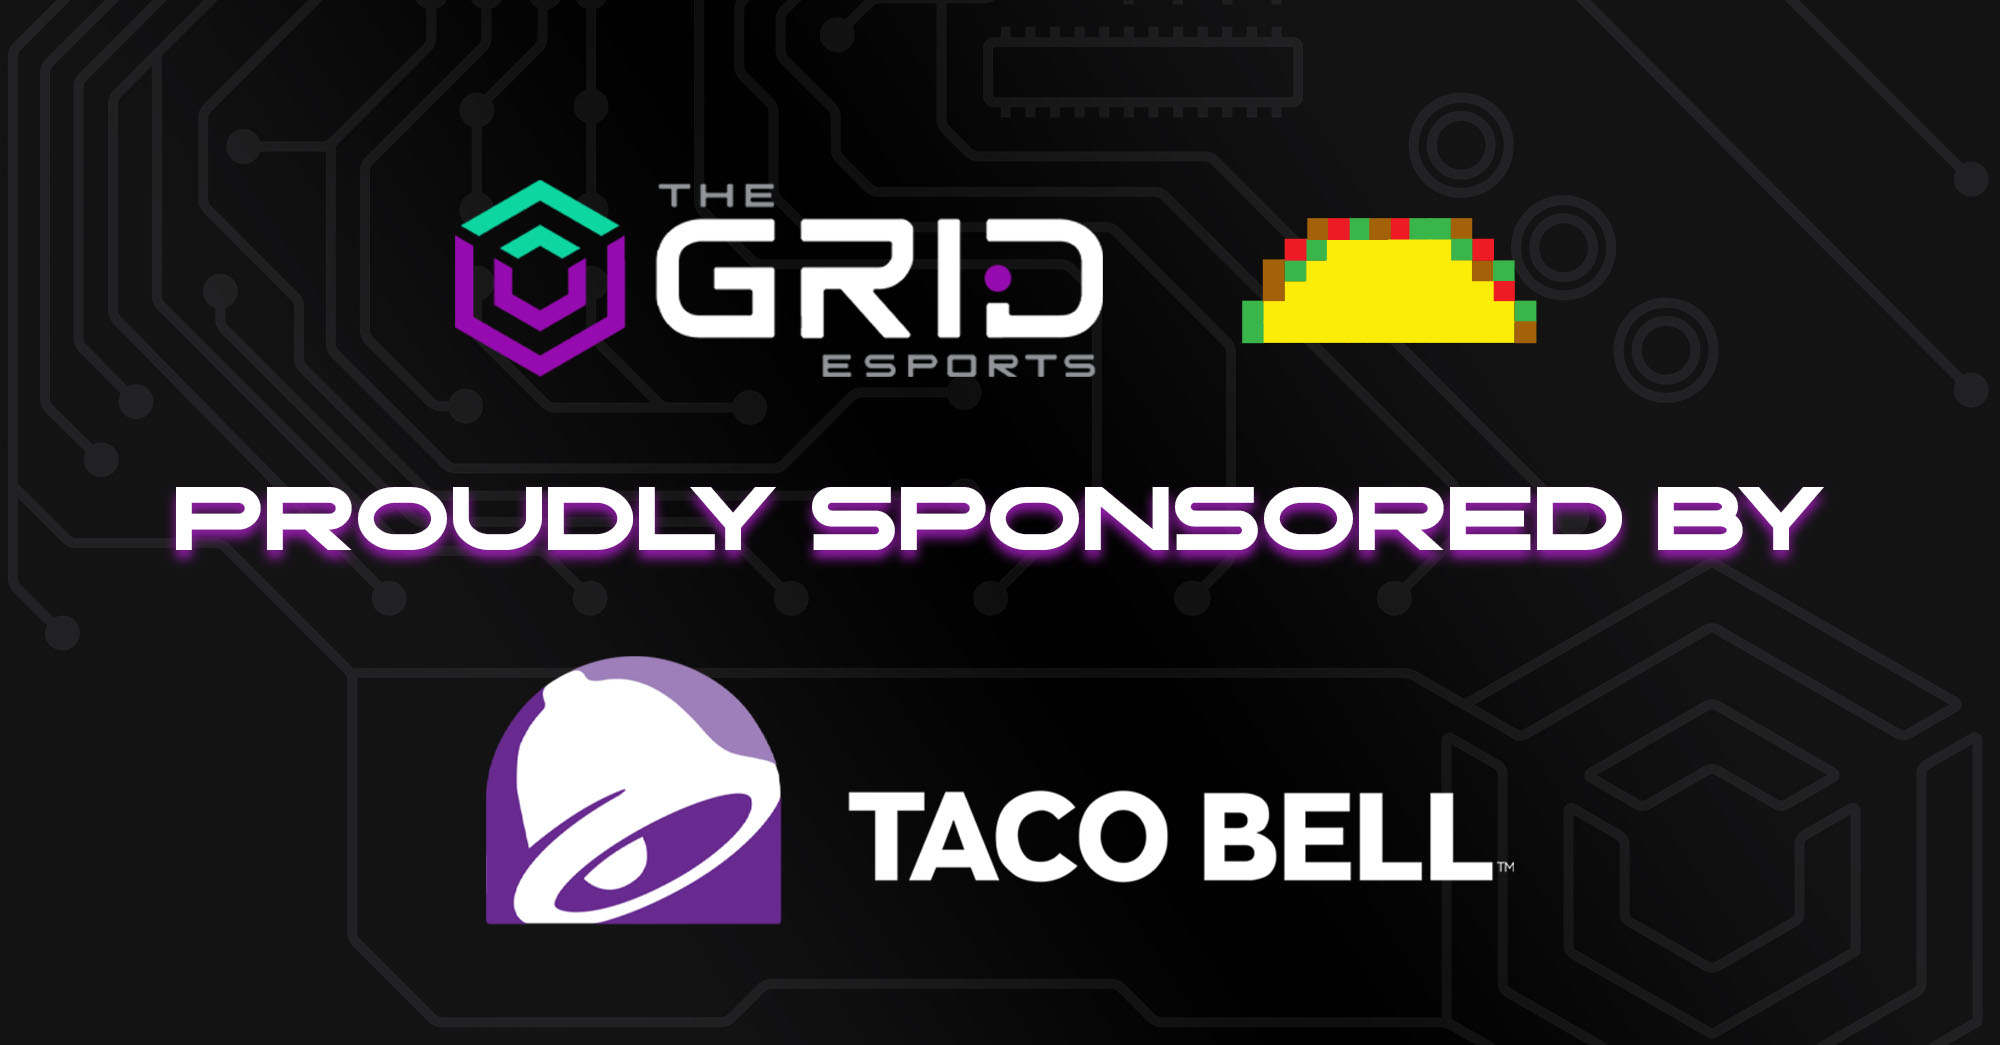 Taco Bell and The Grid Esports